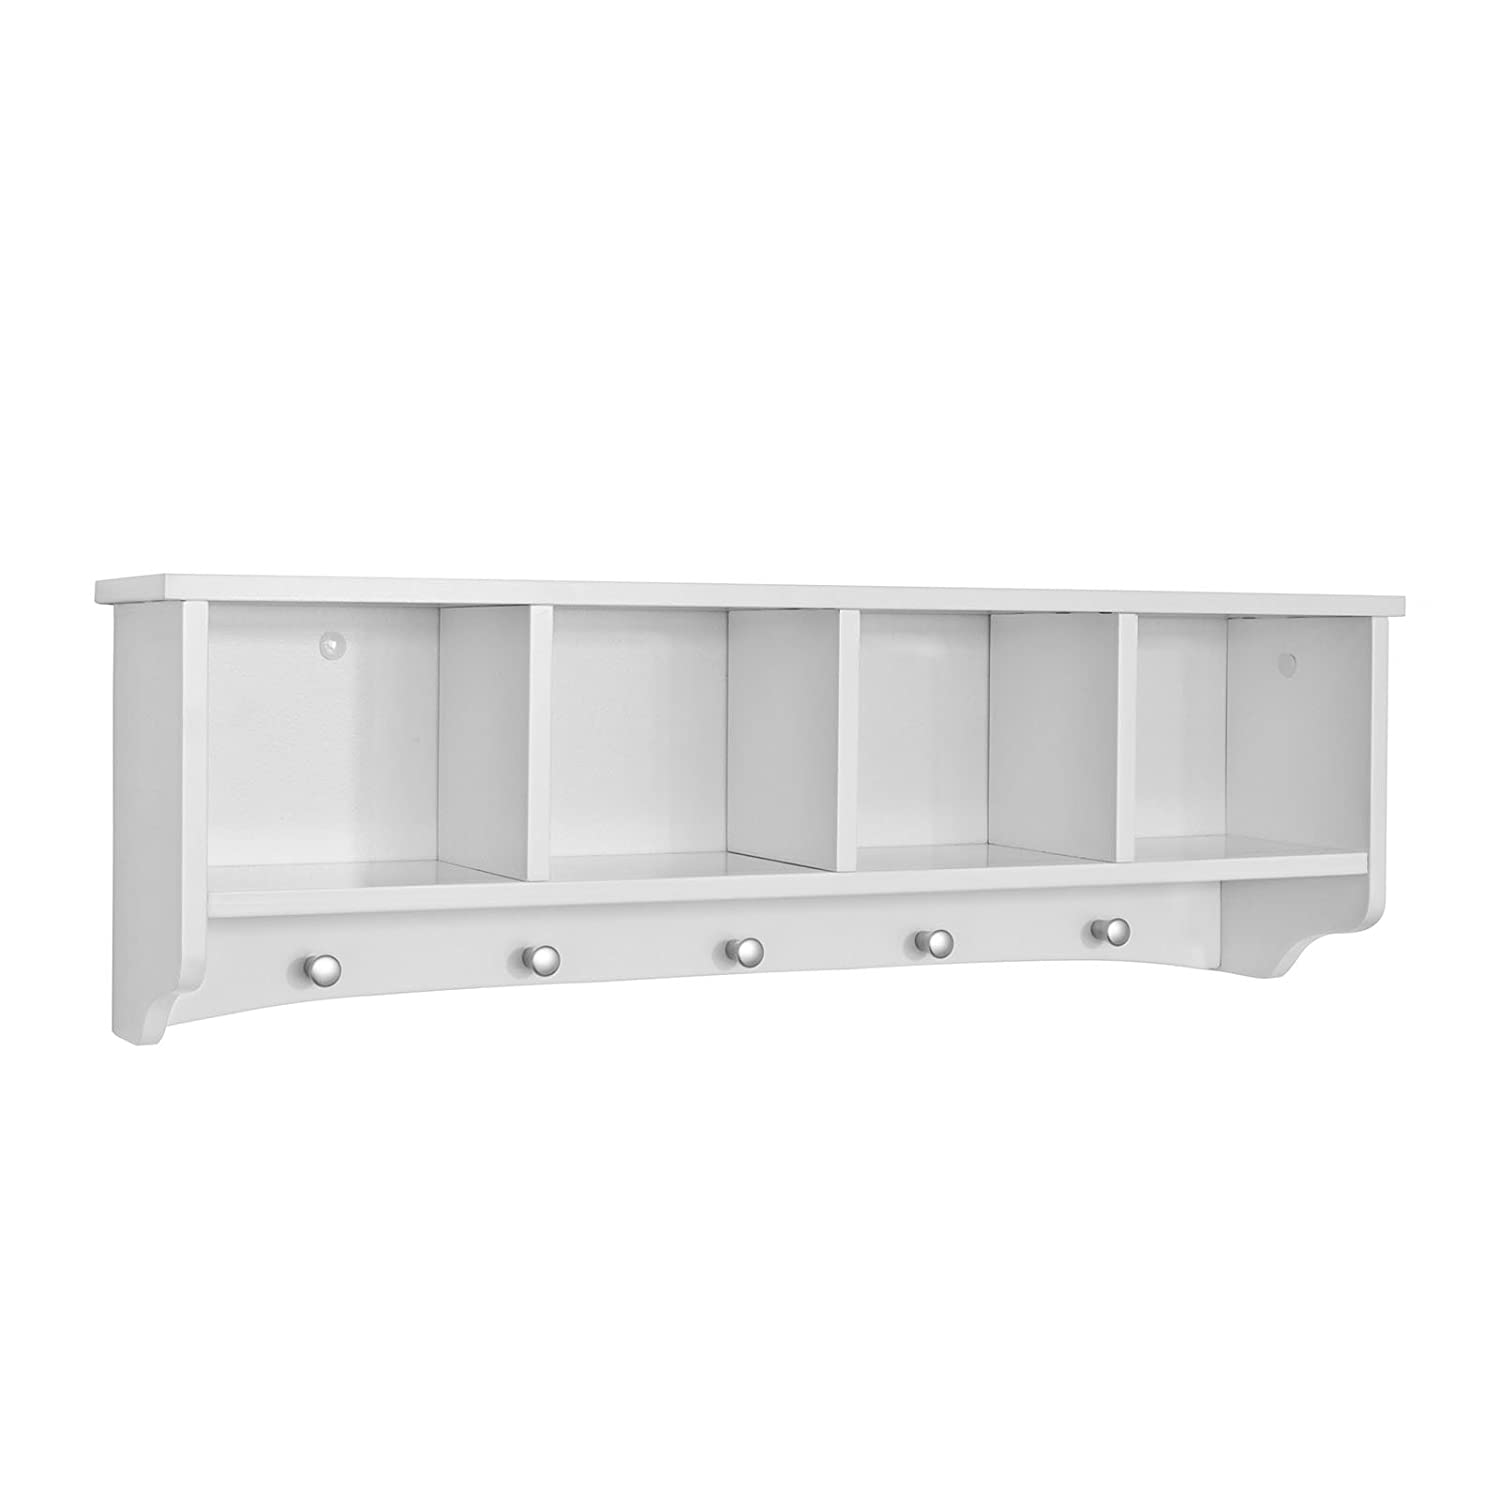 SoBuy® FRG48 L W, White Wall Display Storage Unit With 4 Components 5 Hooks